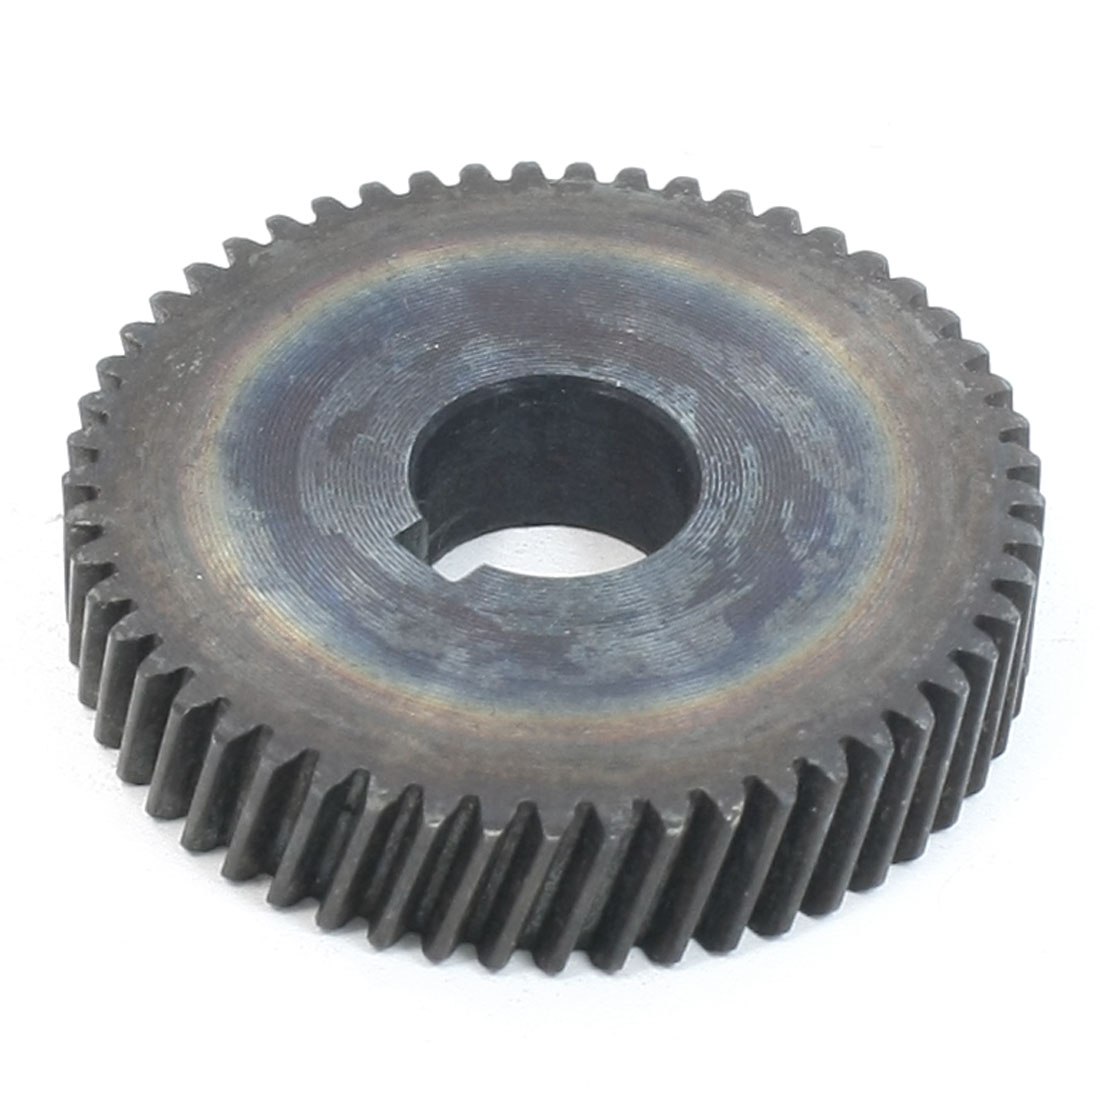 Power Tool Spare Part Helical Gear Wheel for Makita 5016 Electric Chain Saw